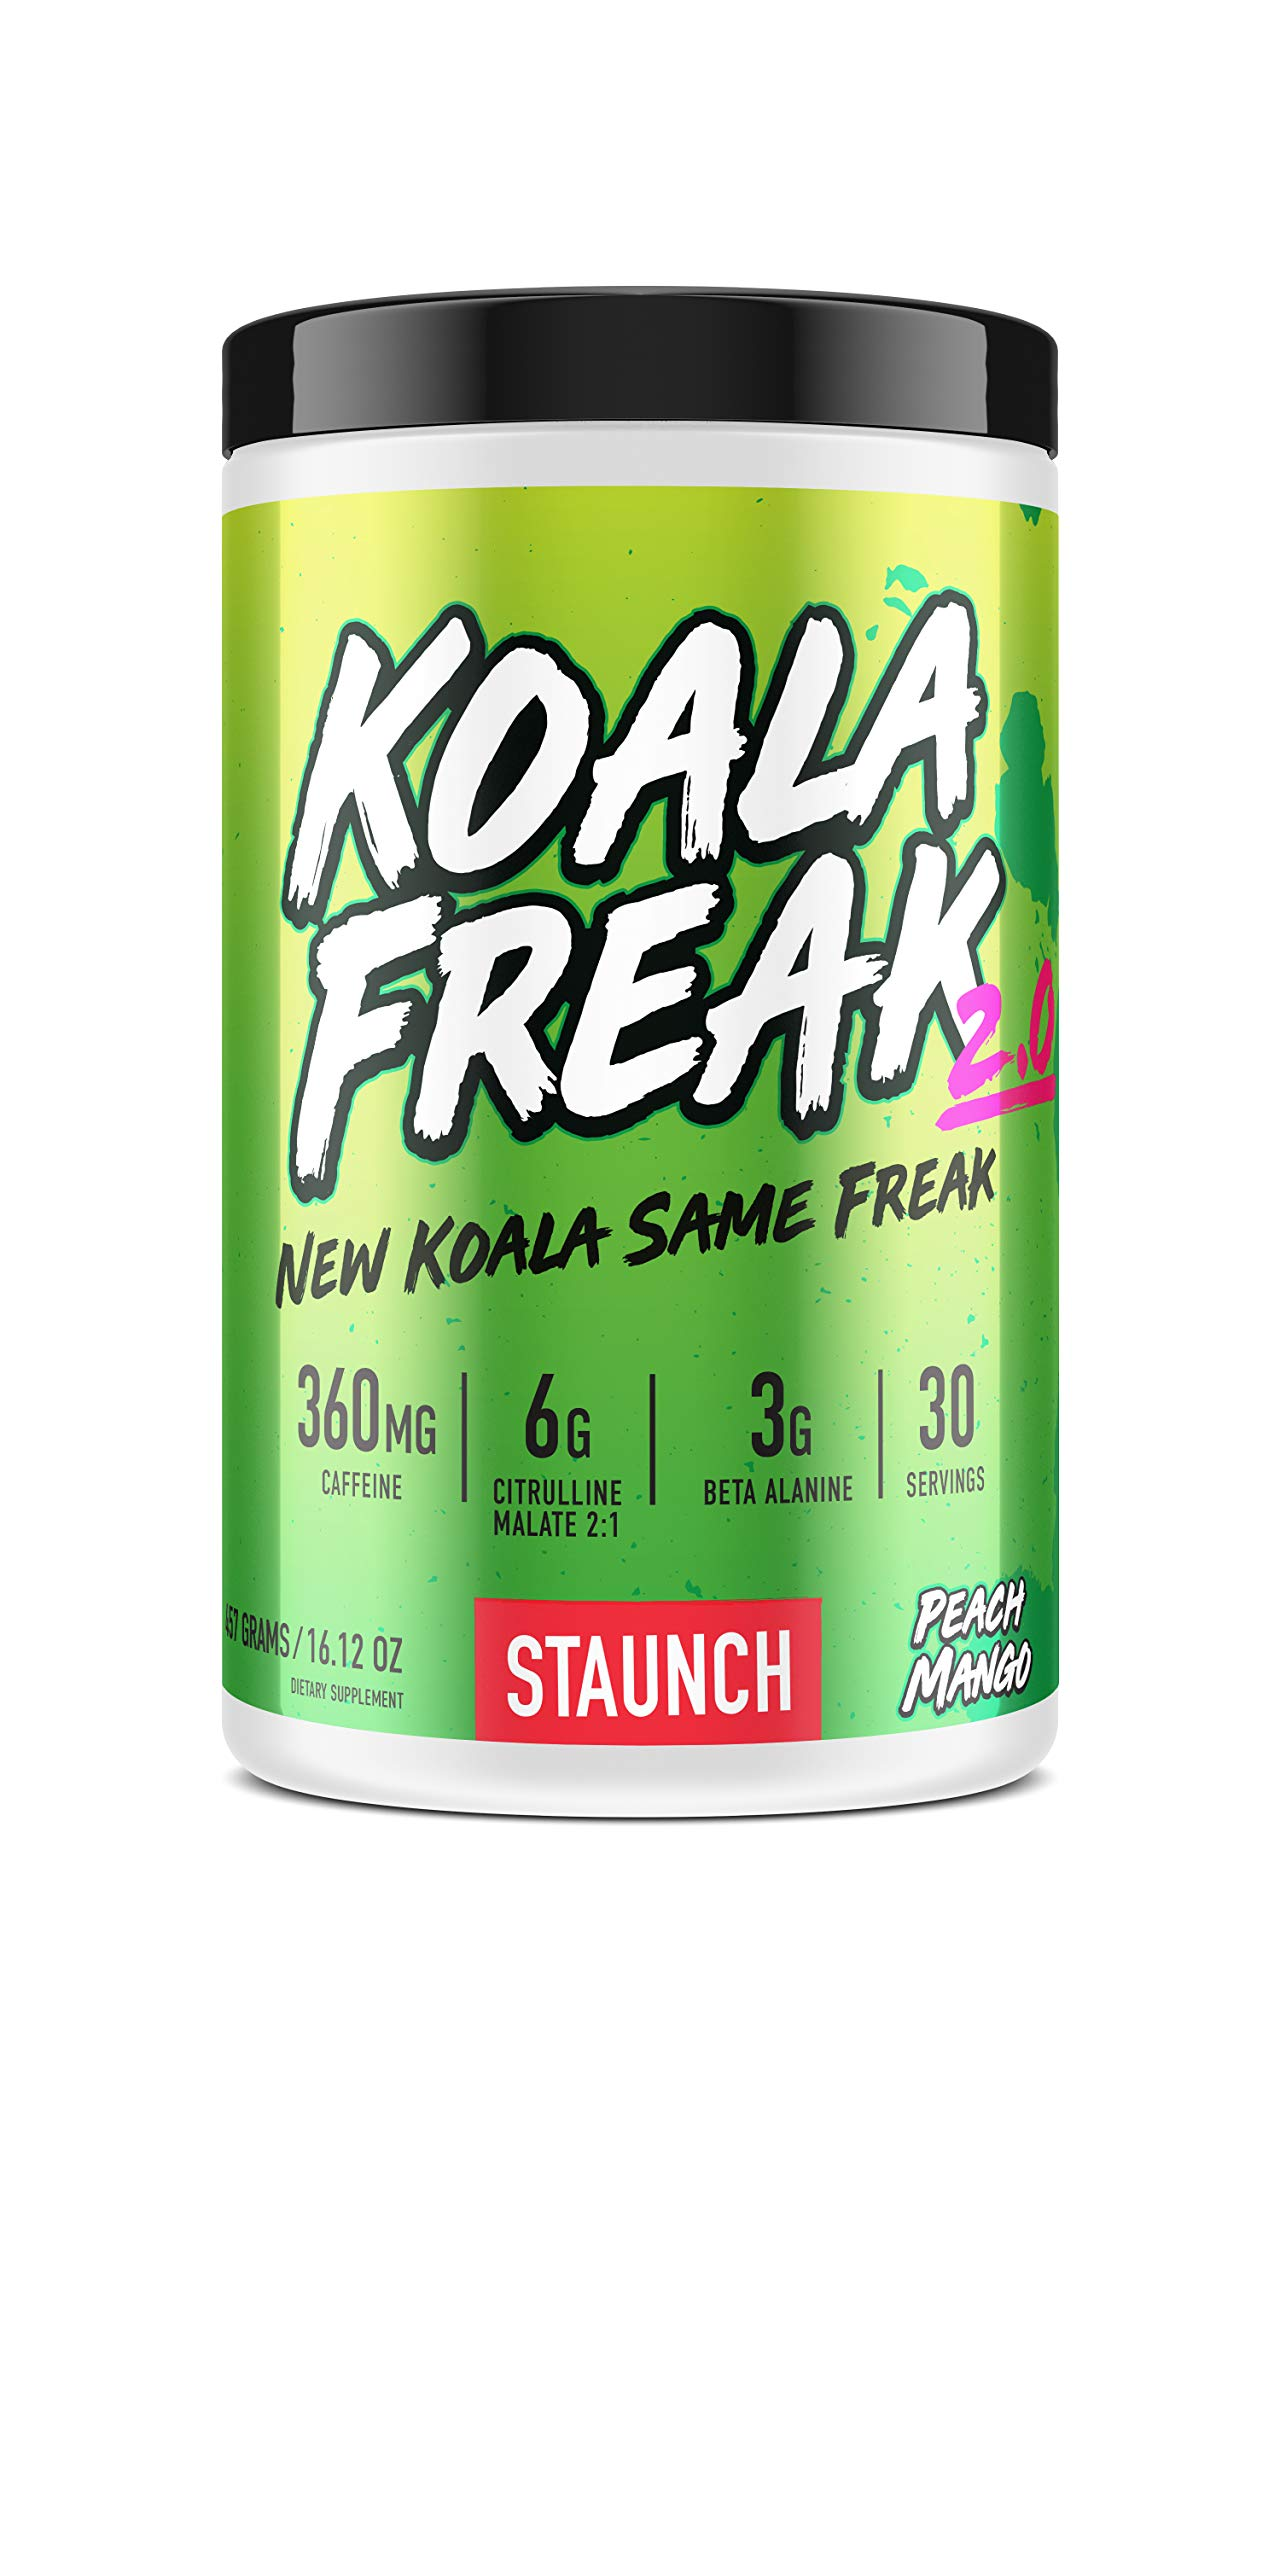 Staunch Koala Freak 2.0 Pre-Workout (Peach Mango) 30 Servings - Effective, High Quality Pre-Workout Powder